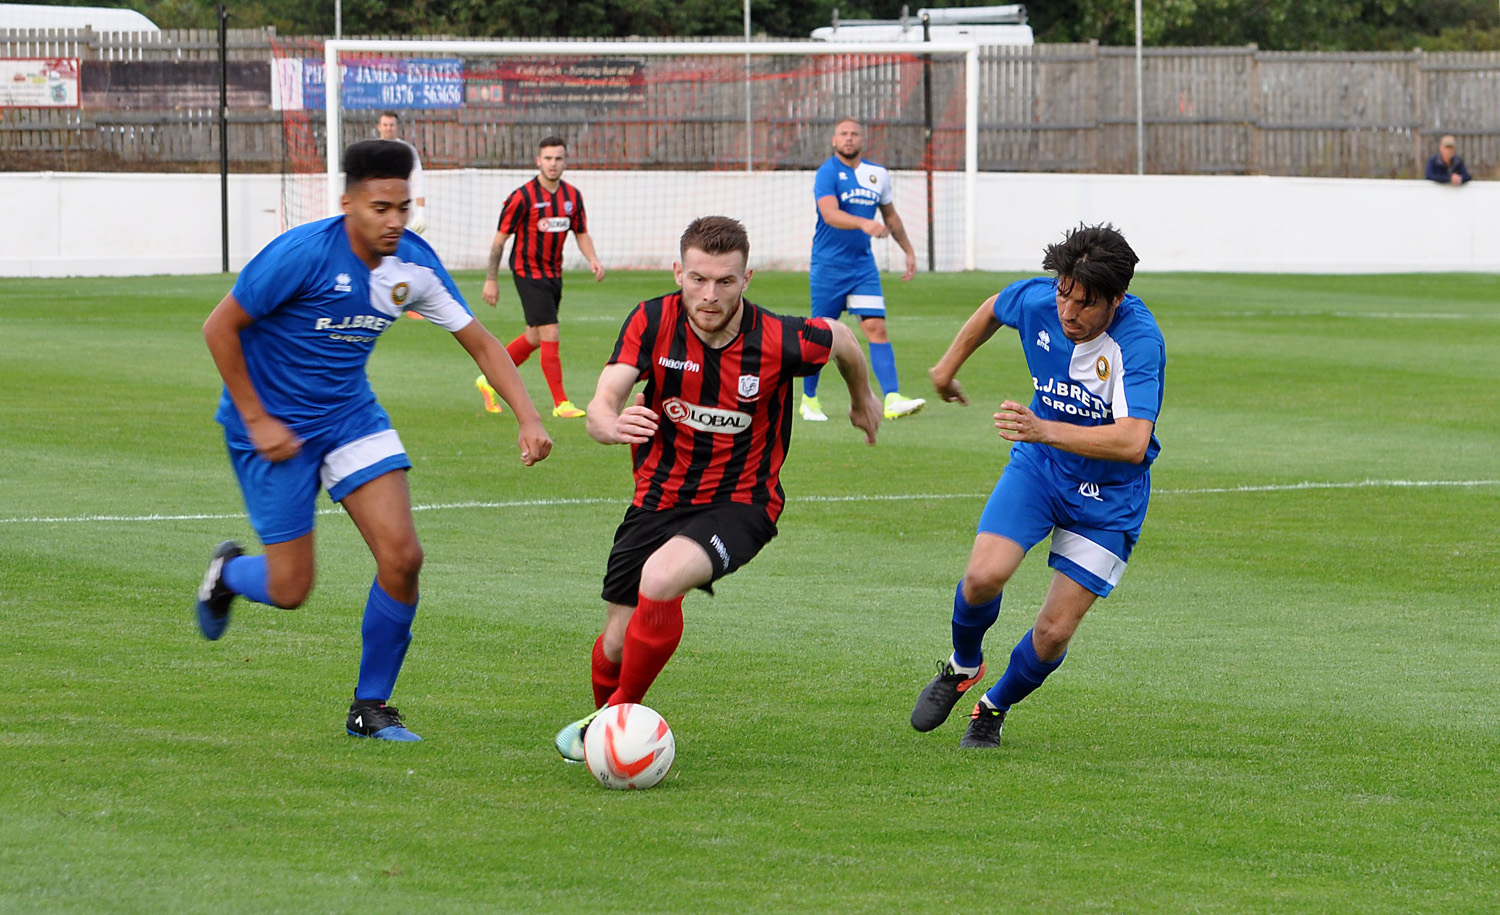 coggeshall-5-1-stanway-rovers-01-08-17-2